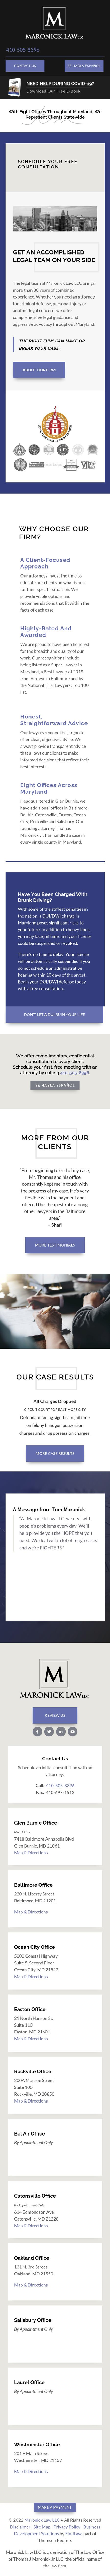 The Law Offices of Thomas Maronick Jr LLC - Baltimore MD Lawyers